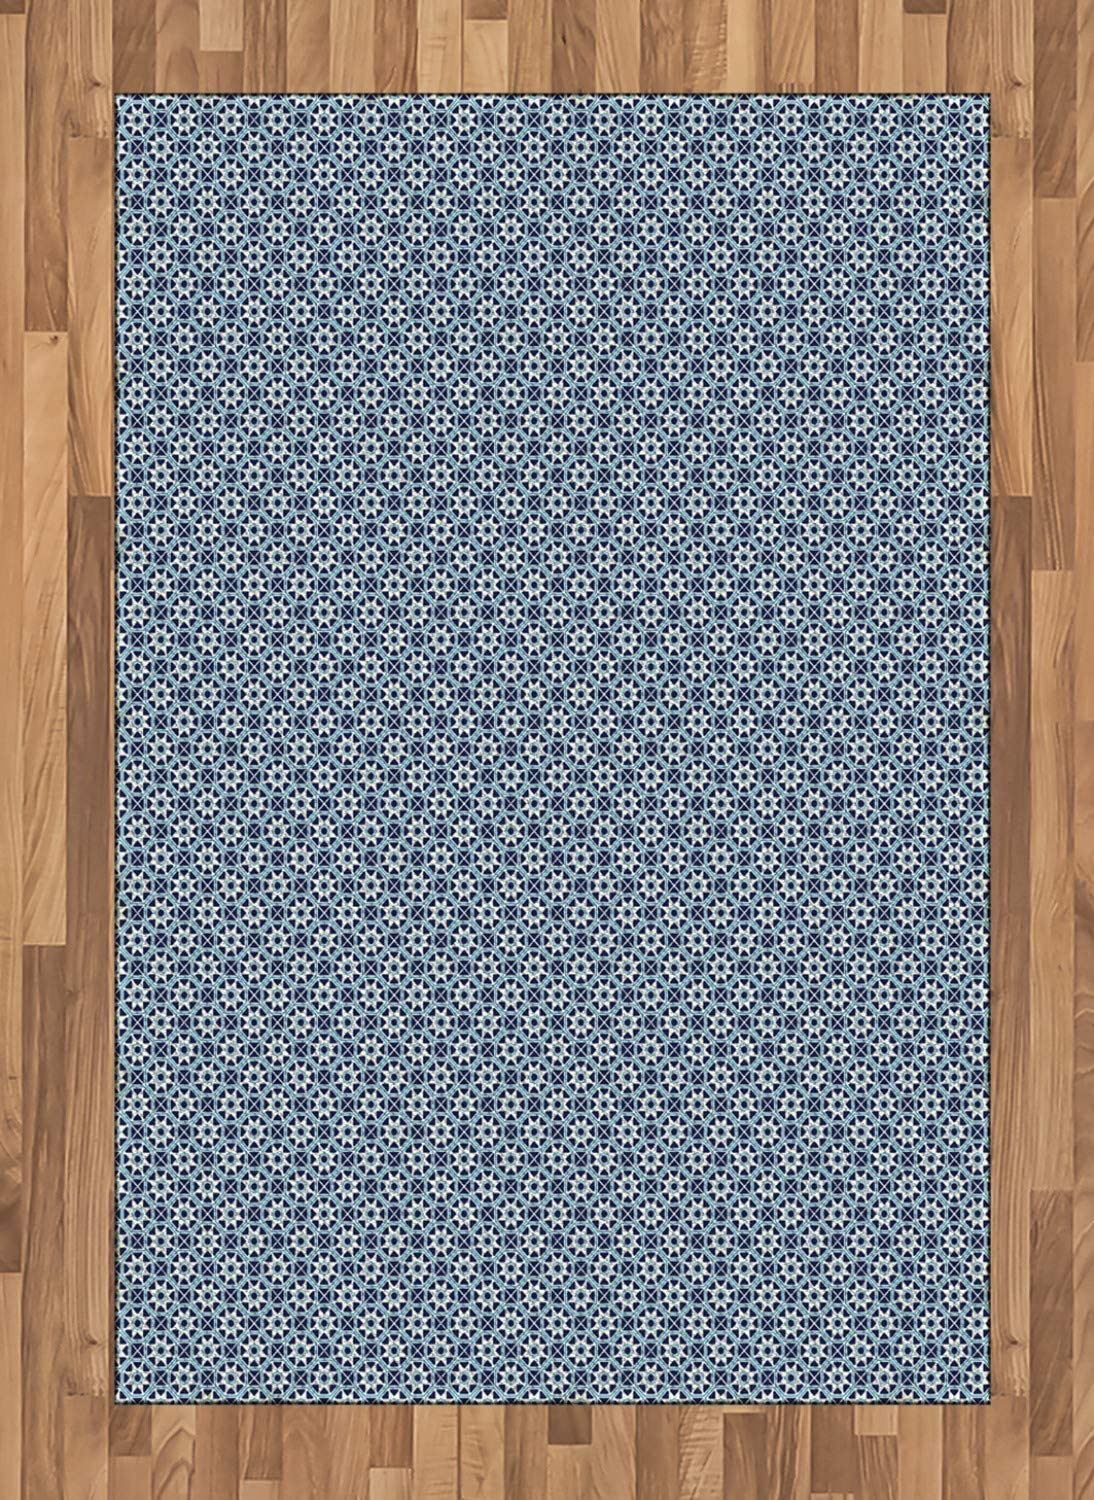 Ambesonne Stars Area Rug, Shapes with Octagons and Squares Moroccan Inspirations, Flat Woven Accent Rug for Living Room Bedroom Dining Room, 4' X 5.7', Dark Blue Beige and Aqua